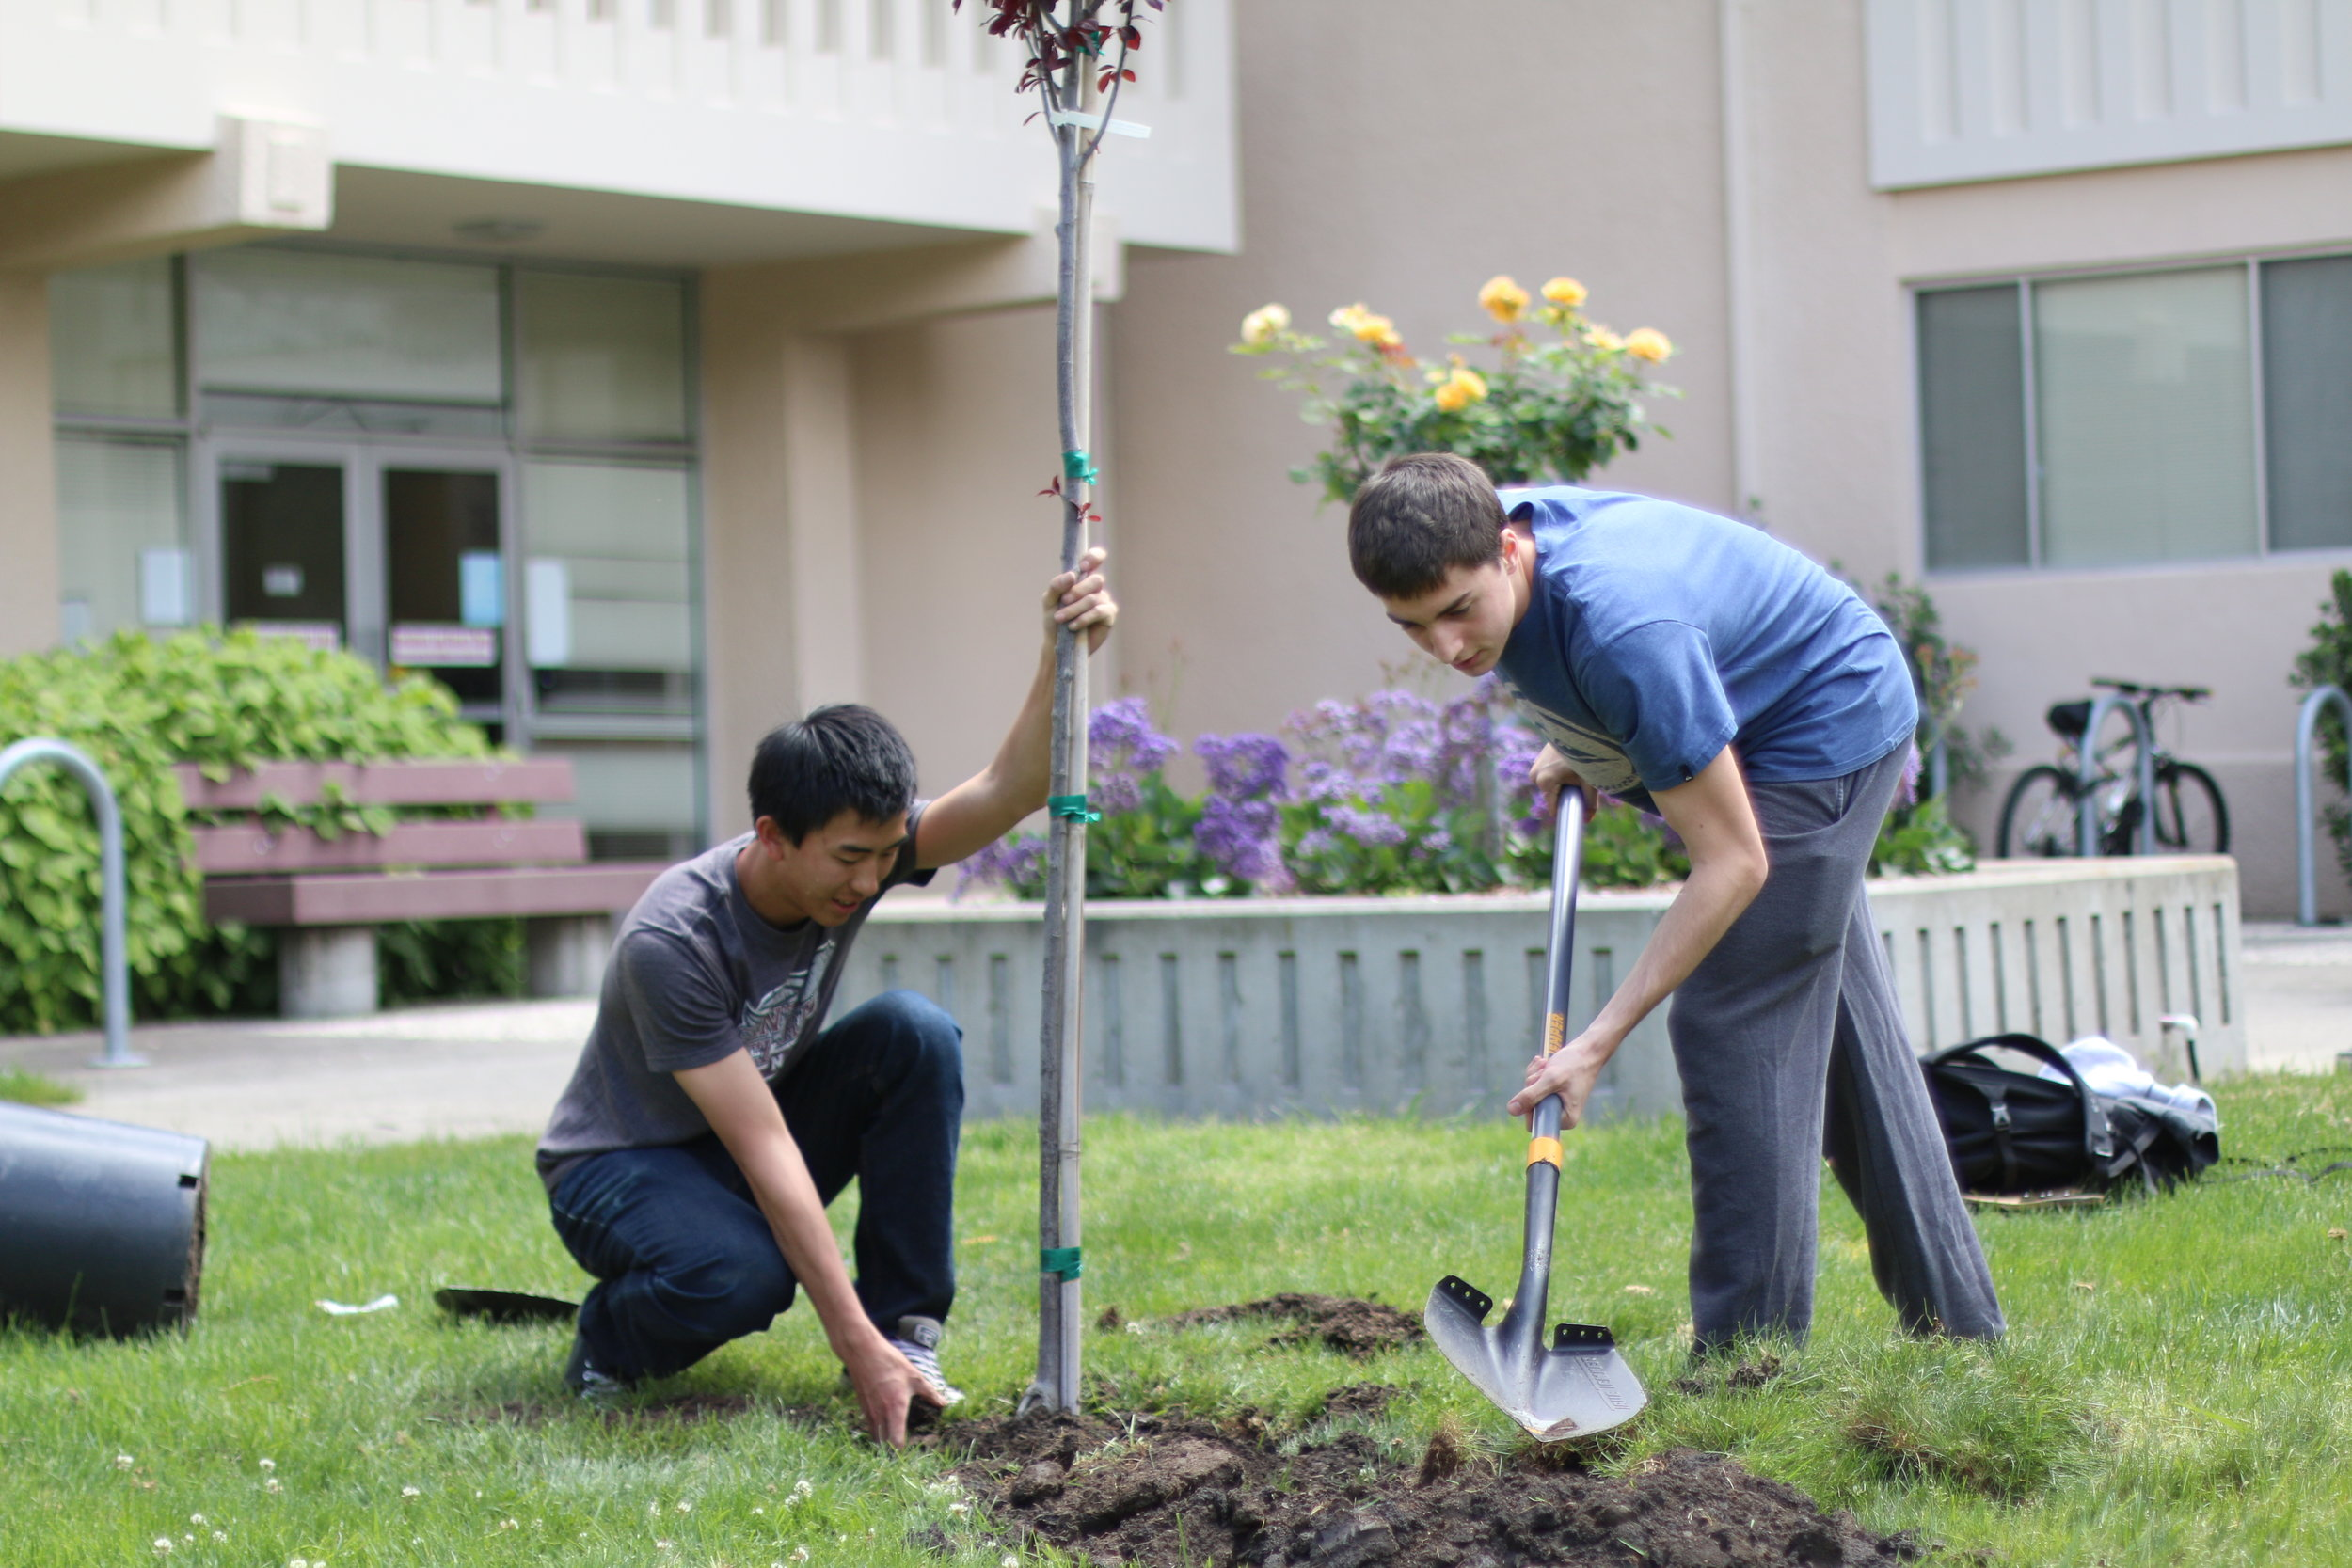 Tree planting through the Center for Sustainability (Source: Center for Sustainability)